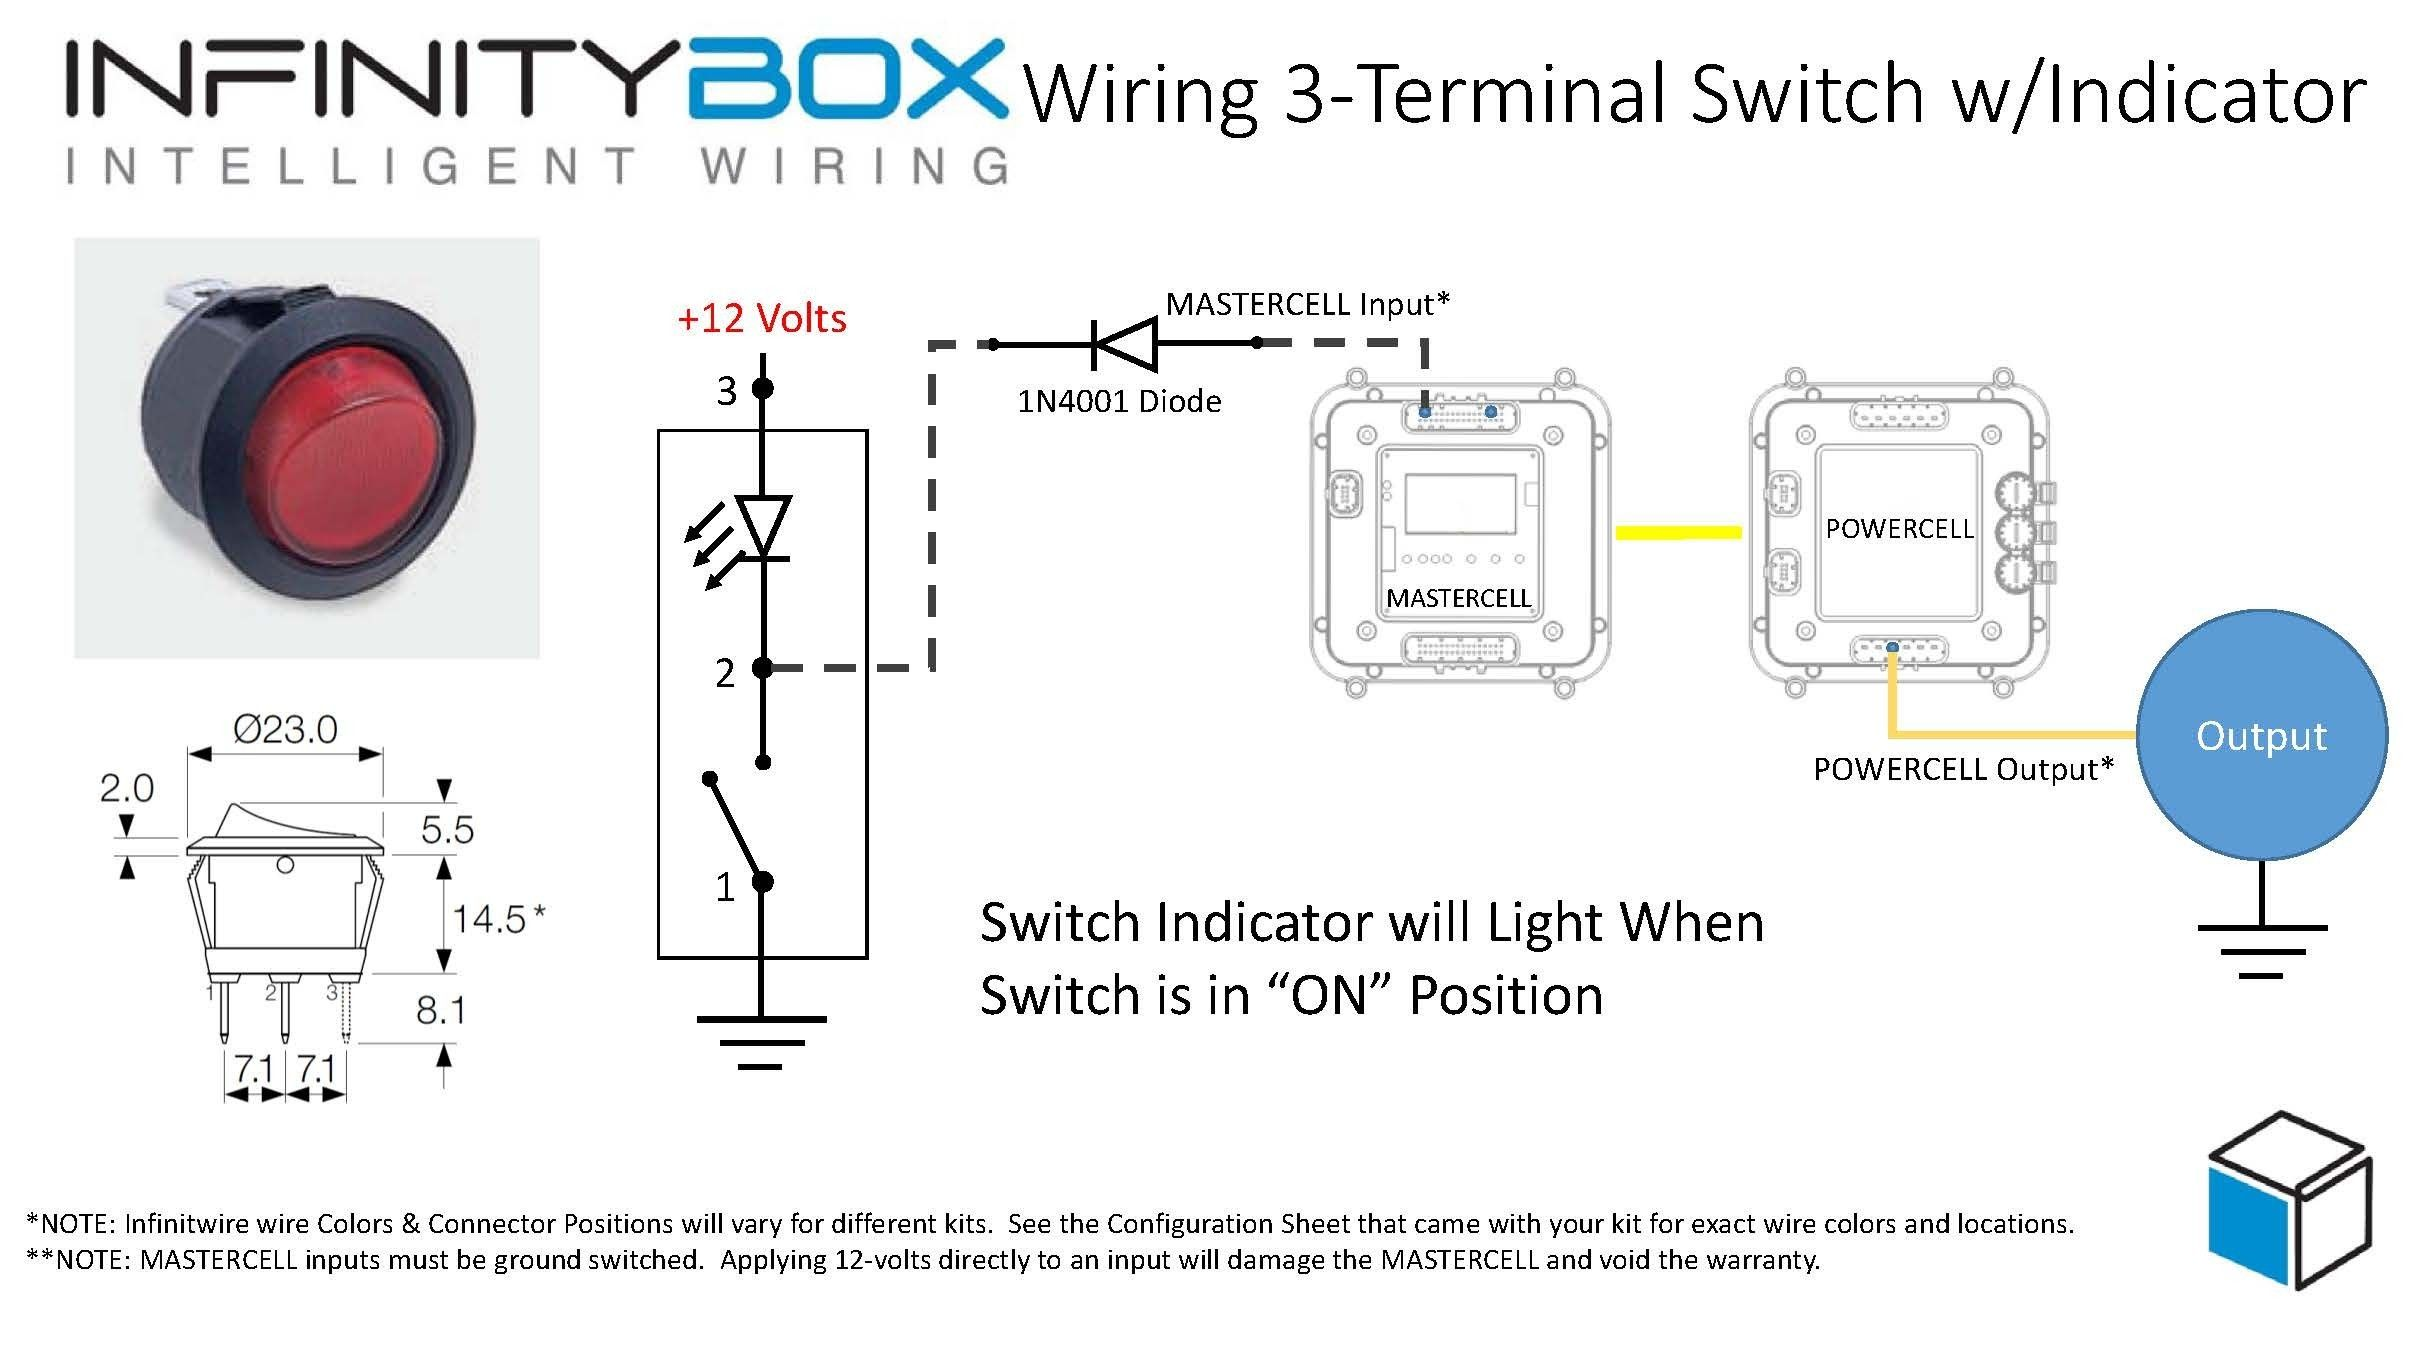 Unique Simple Switch Wiring Diagram Wiringdiagram Diagramming Diagramm Visuals Visualisation Graphical Toggle Switch Diagram Switch